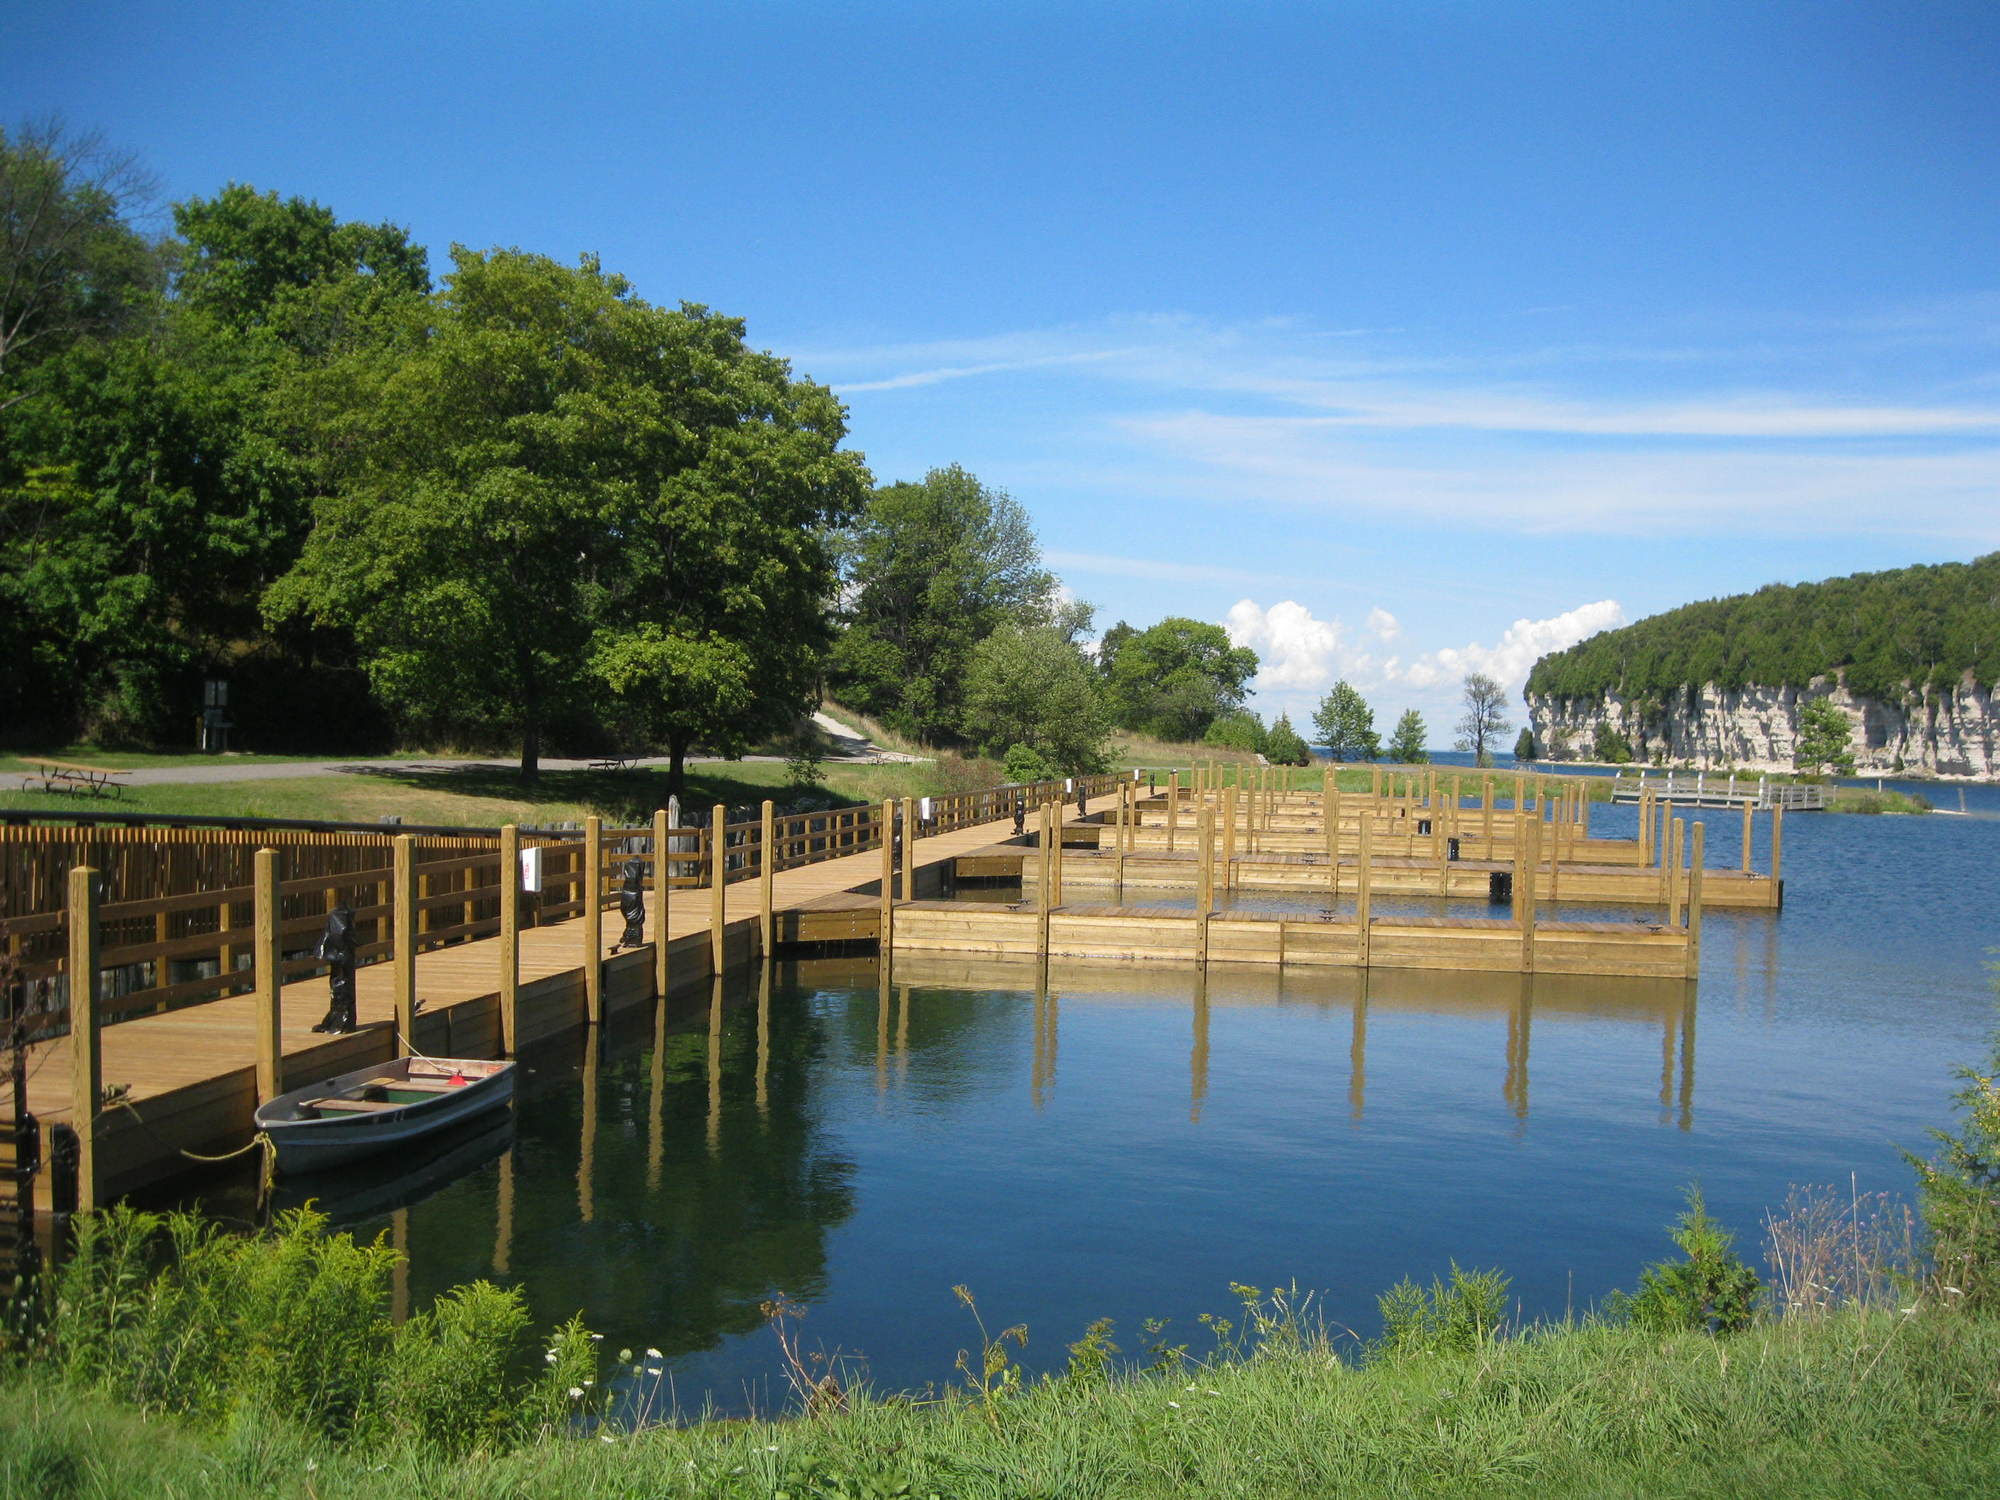 The Michigan Department of Natural Resources has completed replacement of the Snail Shell Harbor dock at Fayette Historic State Park in Delta County.